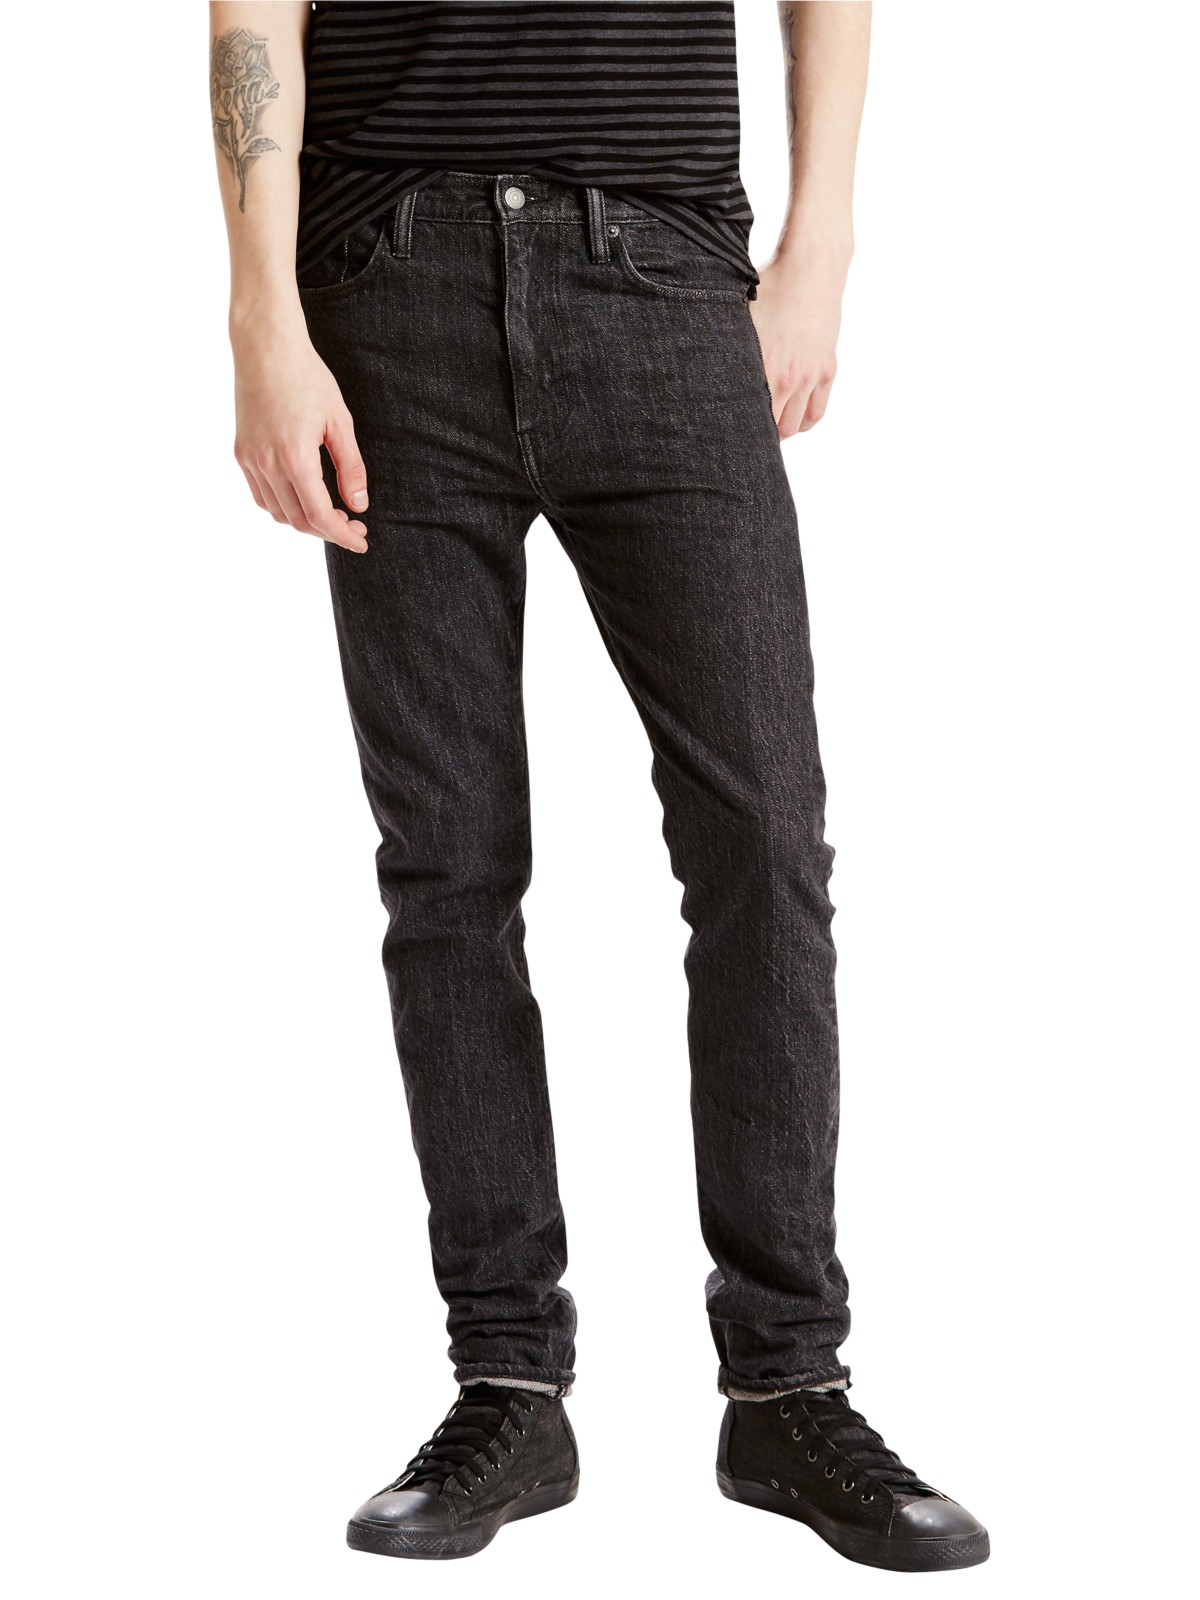 Find your perfect fit in the Hollister guys Blue Jeans collection. Each fit has a slim defining look. This season's guys Blue Jeans are packed with awesome attitude and the coolest vintage washes. Our best-selling super skinny & skinny jeans now stack above the ankle. SHOP STACKED JEANS. Our best-selling super skinny & skinny jeans now.